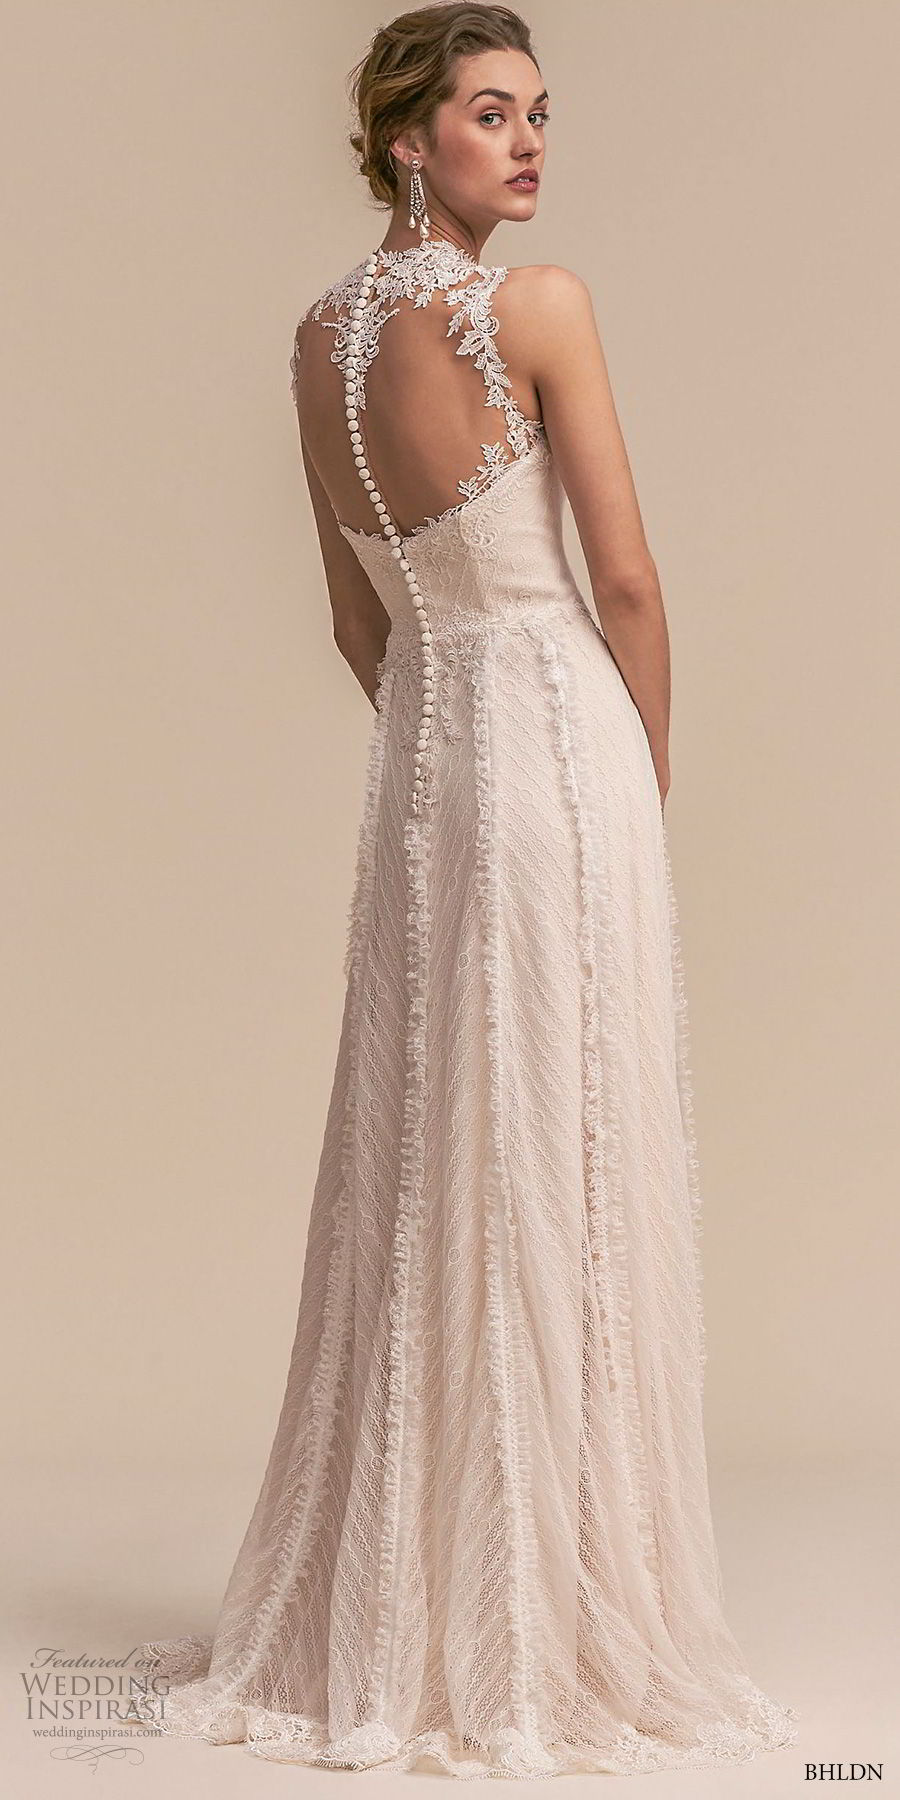 bhldn 2018 whispers bridal sleeveless illusion jewel sweetheart neckline full embellishment romantic a line wedding dress sheer button back sweep train (2) bv